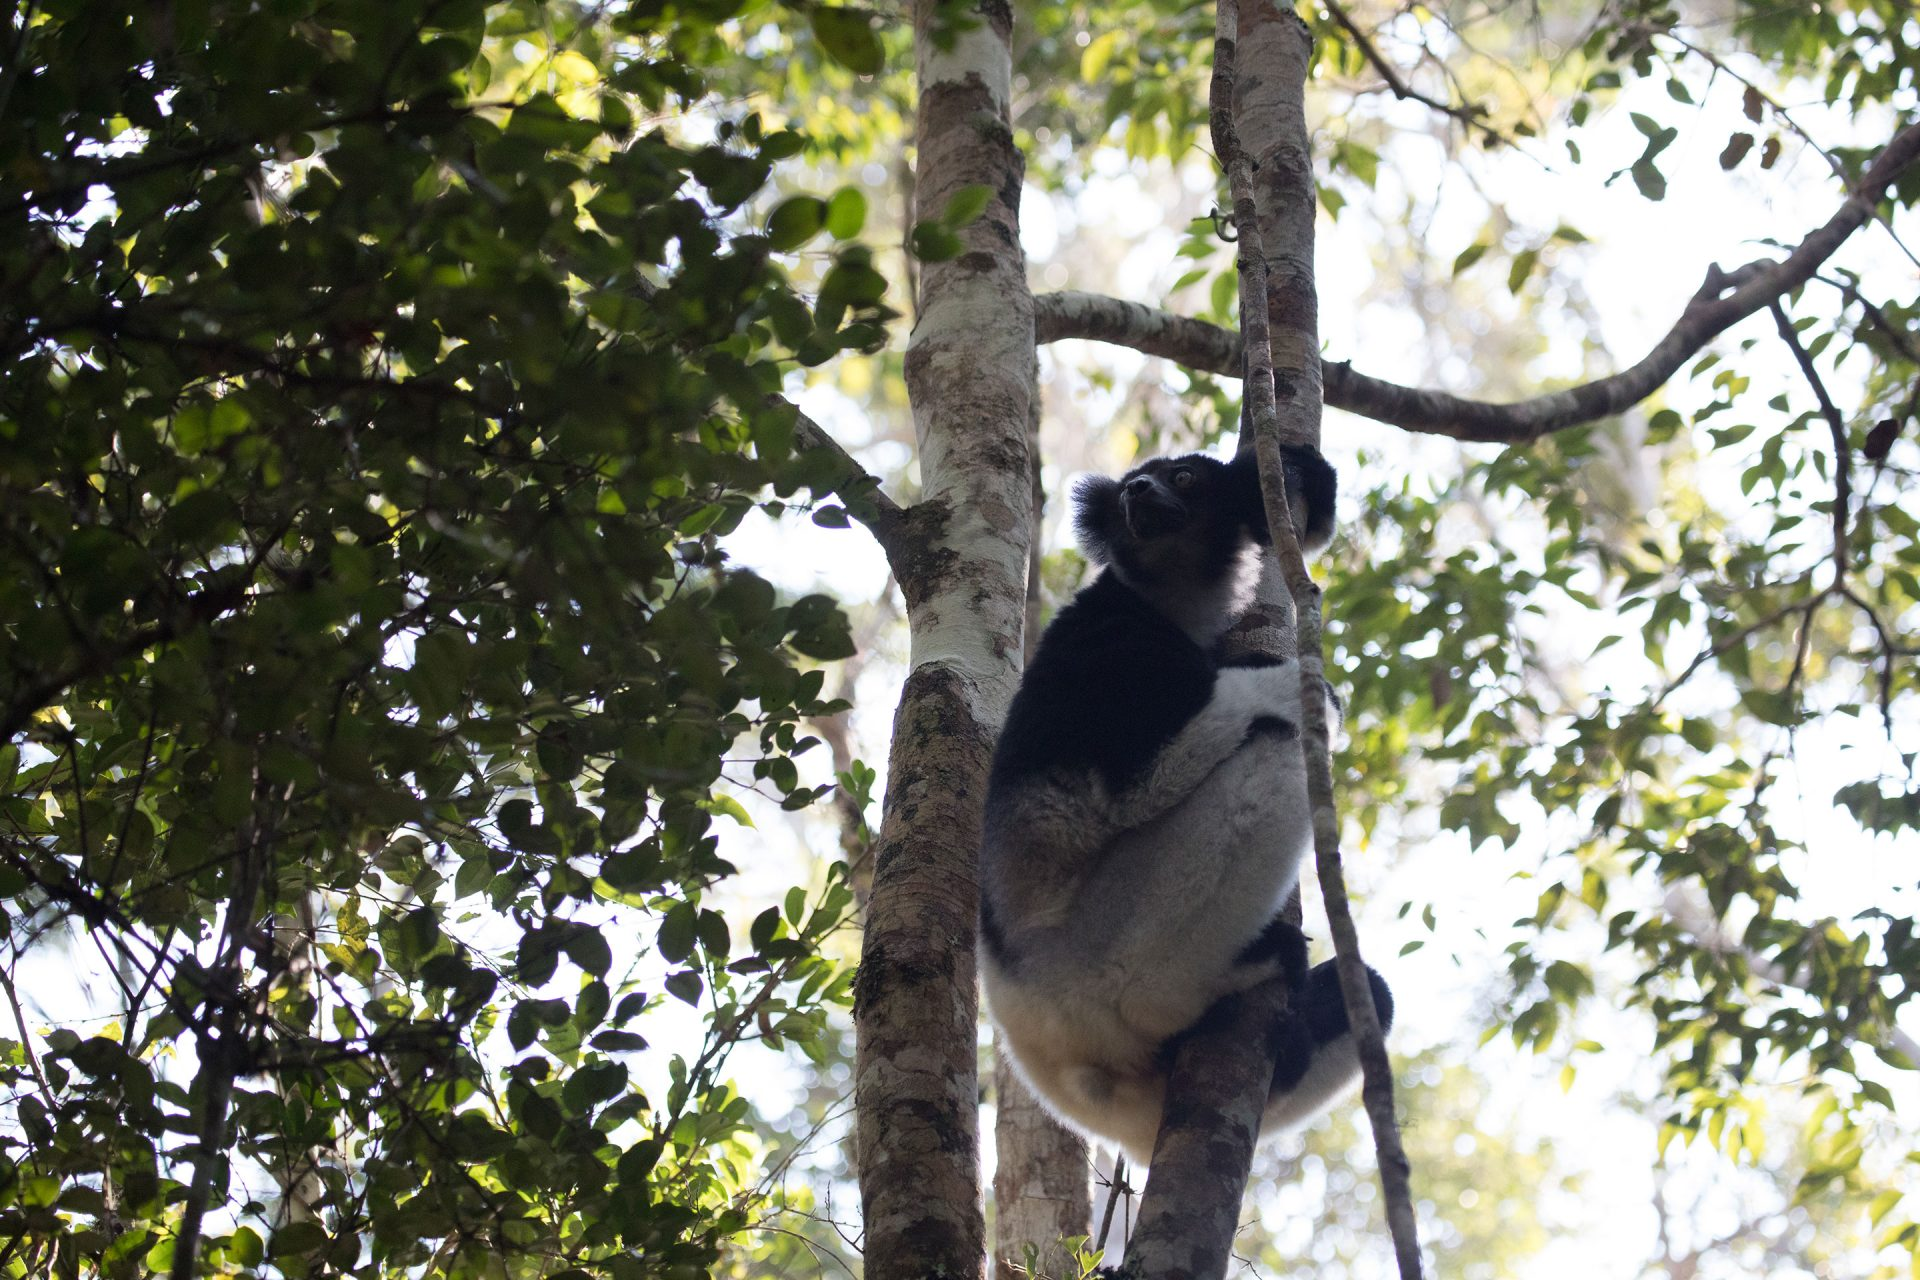 Indri is Madagascar's largest (non-extinct) lemur species. It's booming call is penetrating and eerie.